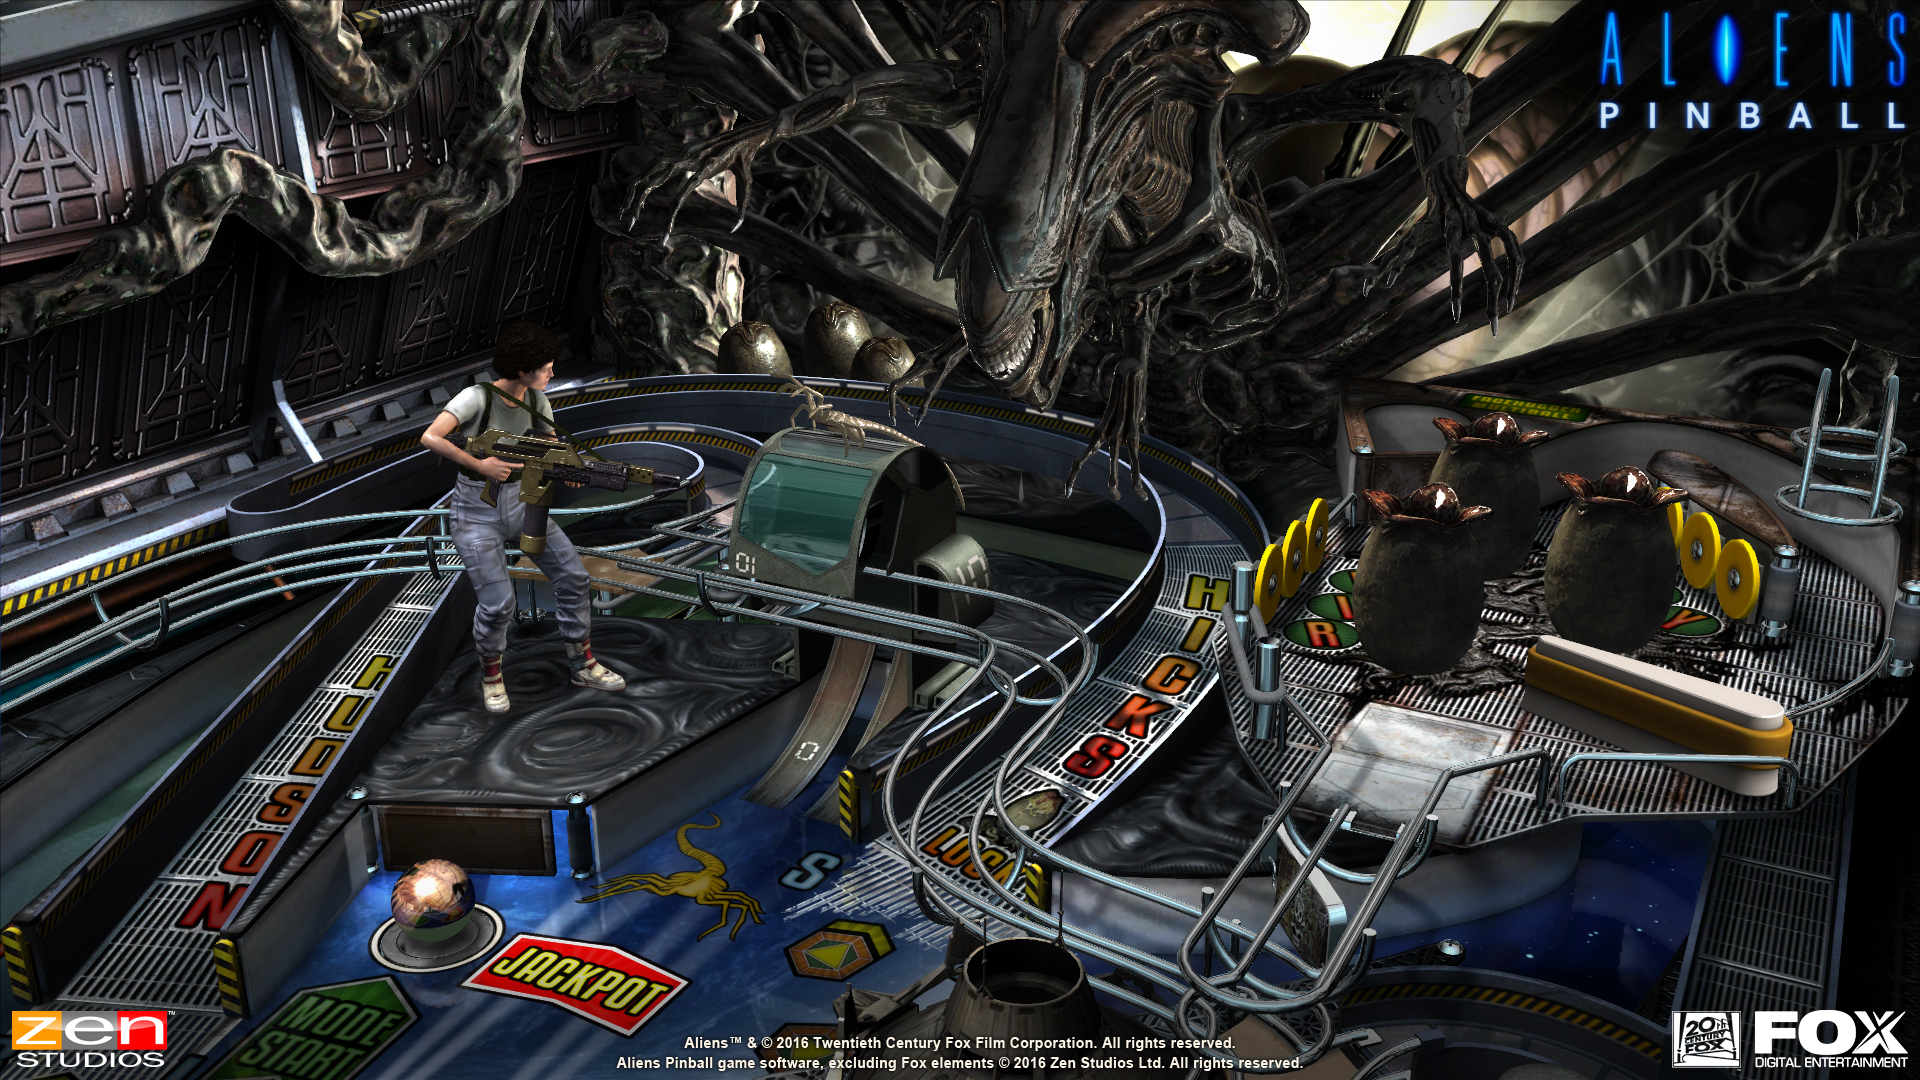 Alien vs Pinball Announcement Screenshot - 2